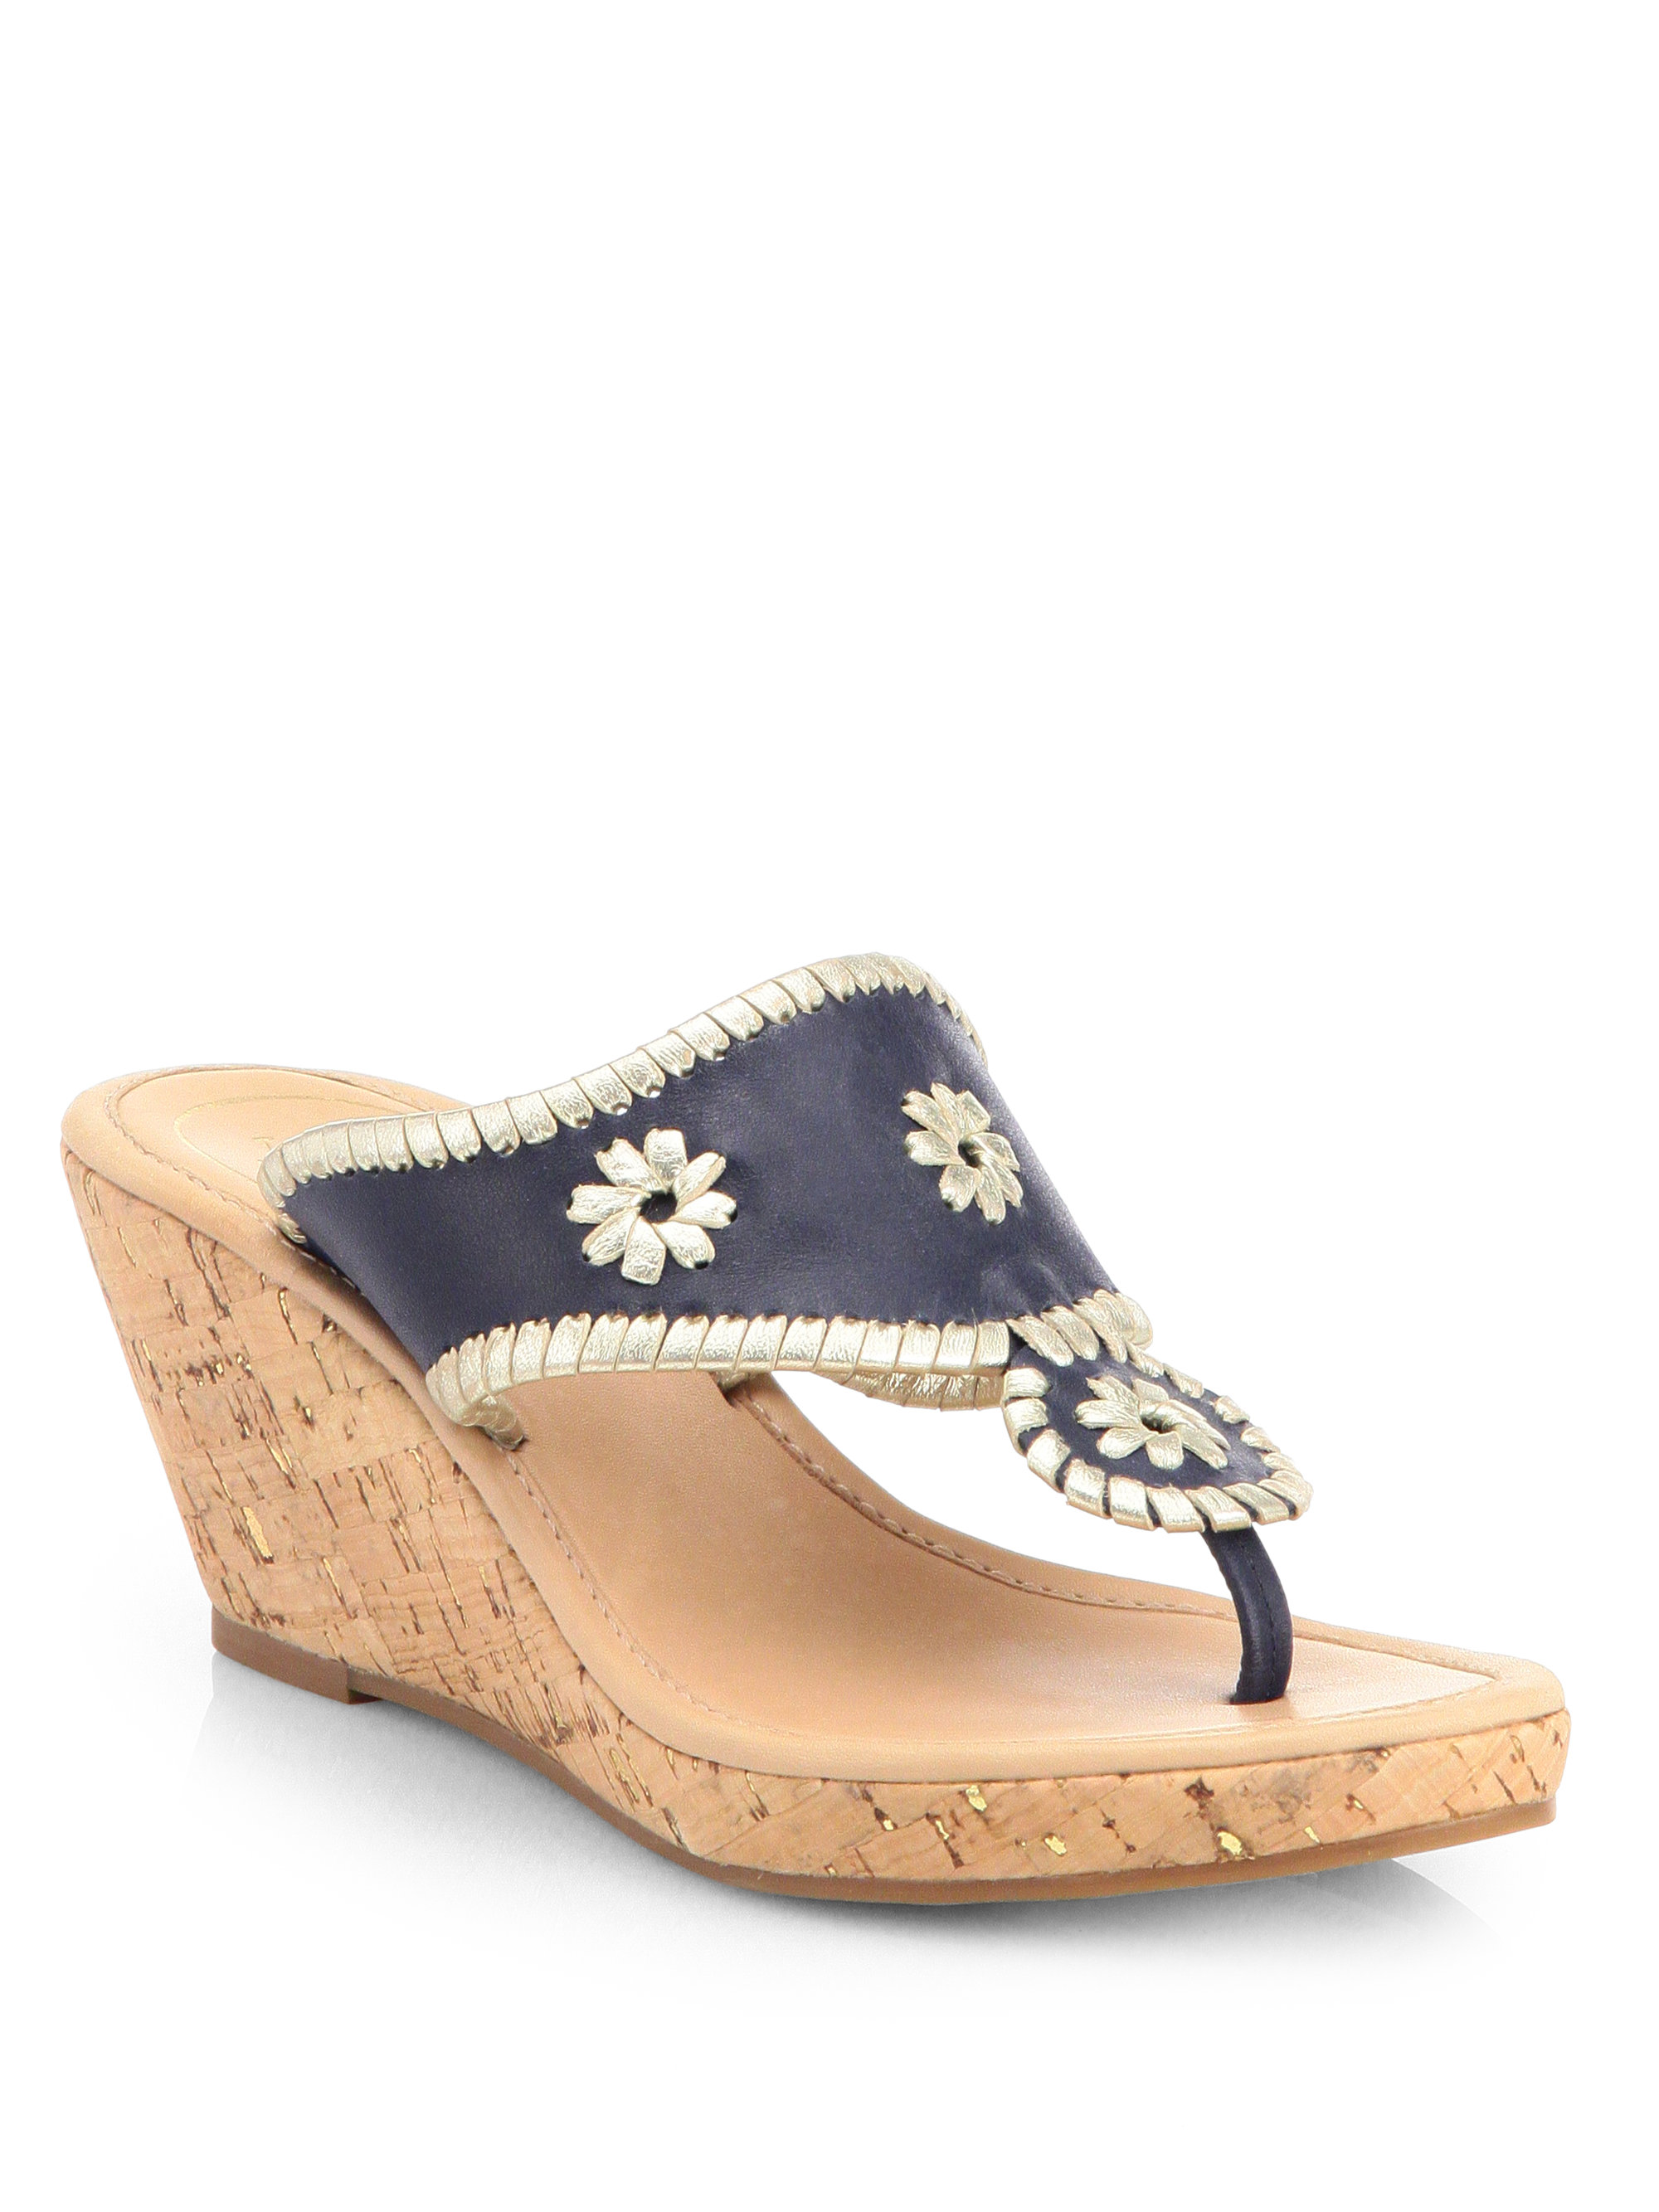 Lyst Jack Rogers Marbella Leather Cork Wedge Sandals In Blue